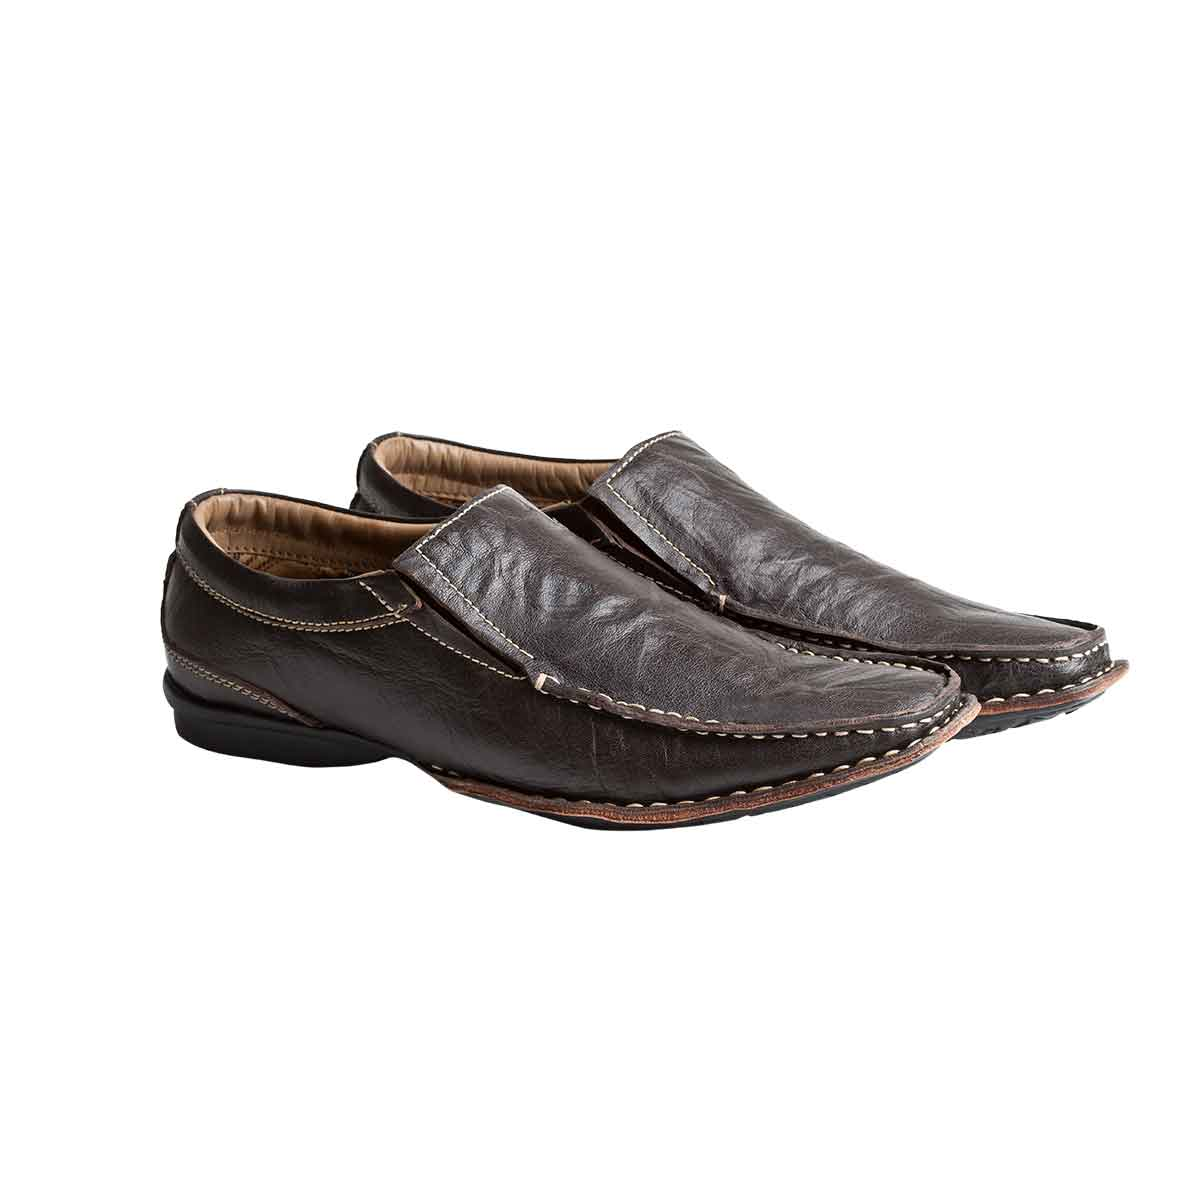 Yepme Casual Leather Slip on Shoes